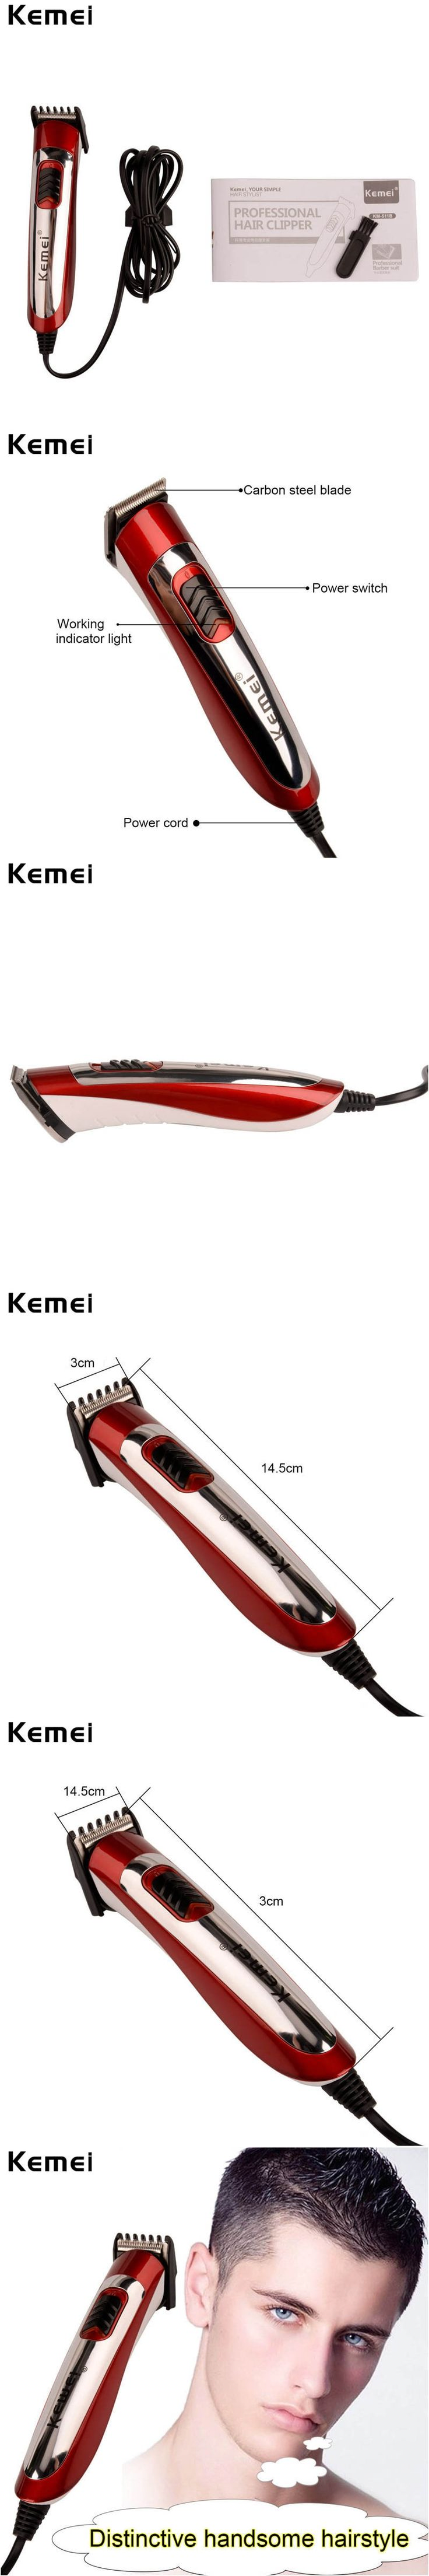 Kemei Corded Electric Hair Trimmer Hair Clipper Professional haircut titanium blade hairclipper hair cutting machine for men P00